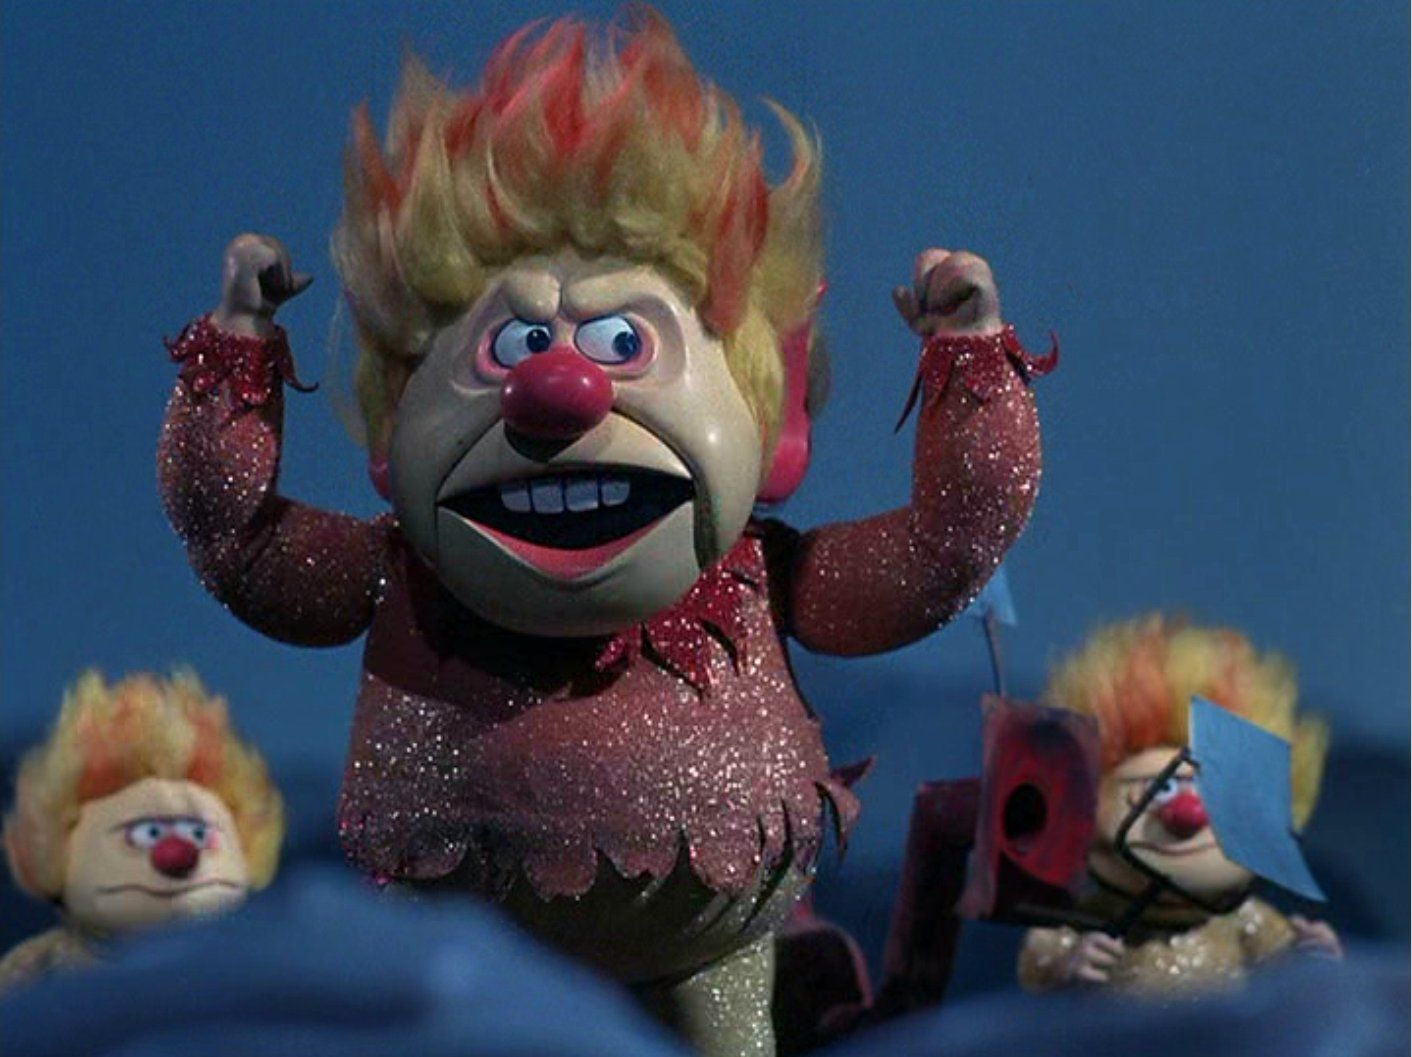 15 best The miser bros images on Pinterest | Heat miser, Merry ...